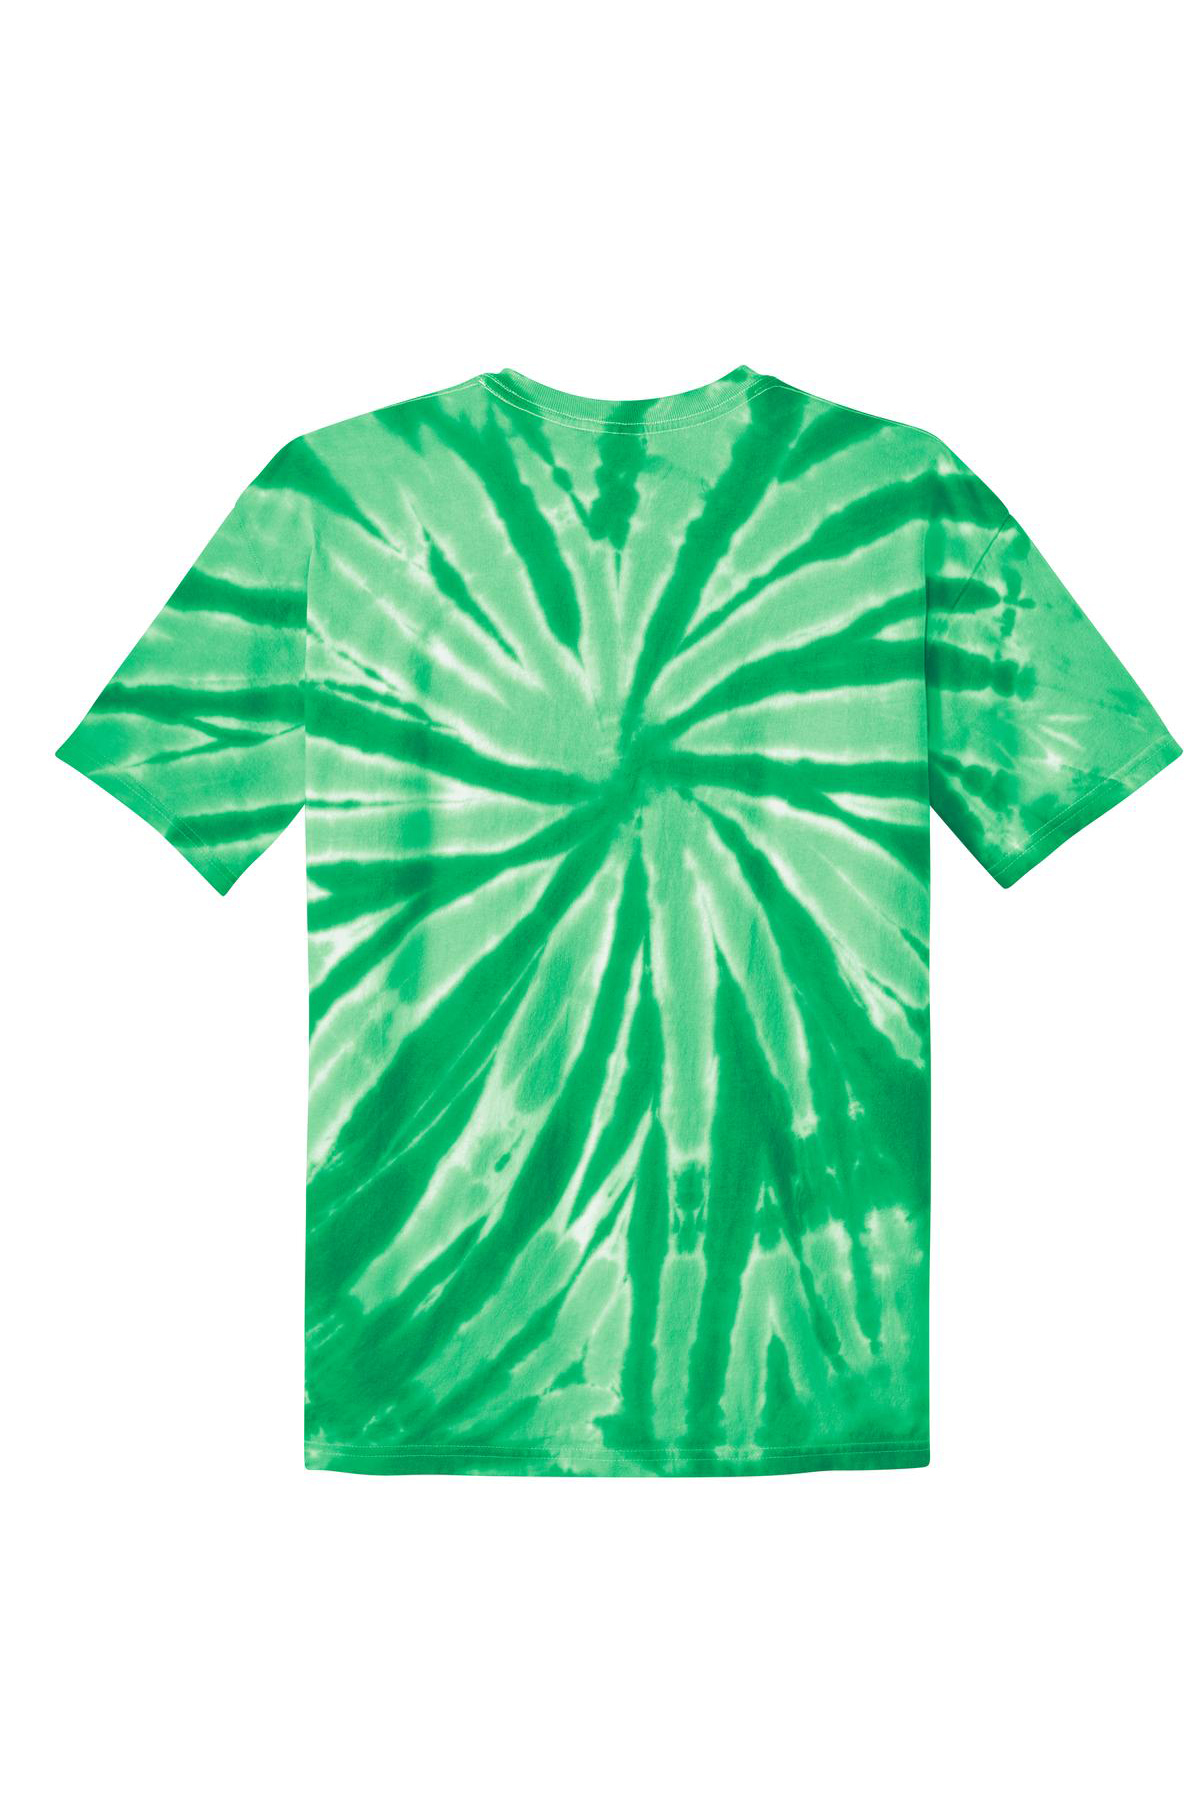 99700243e401 Vertical Accordion Patterns For Tie Dye Shirts – EDGE Engineering ...